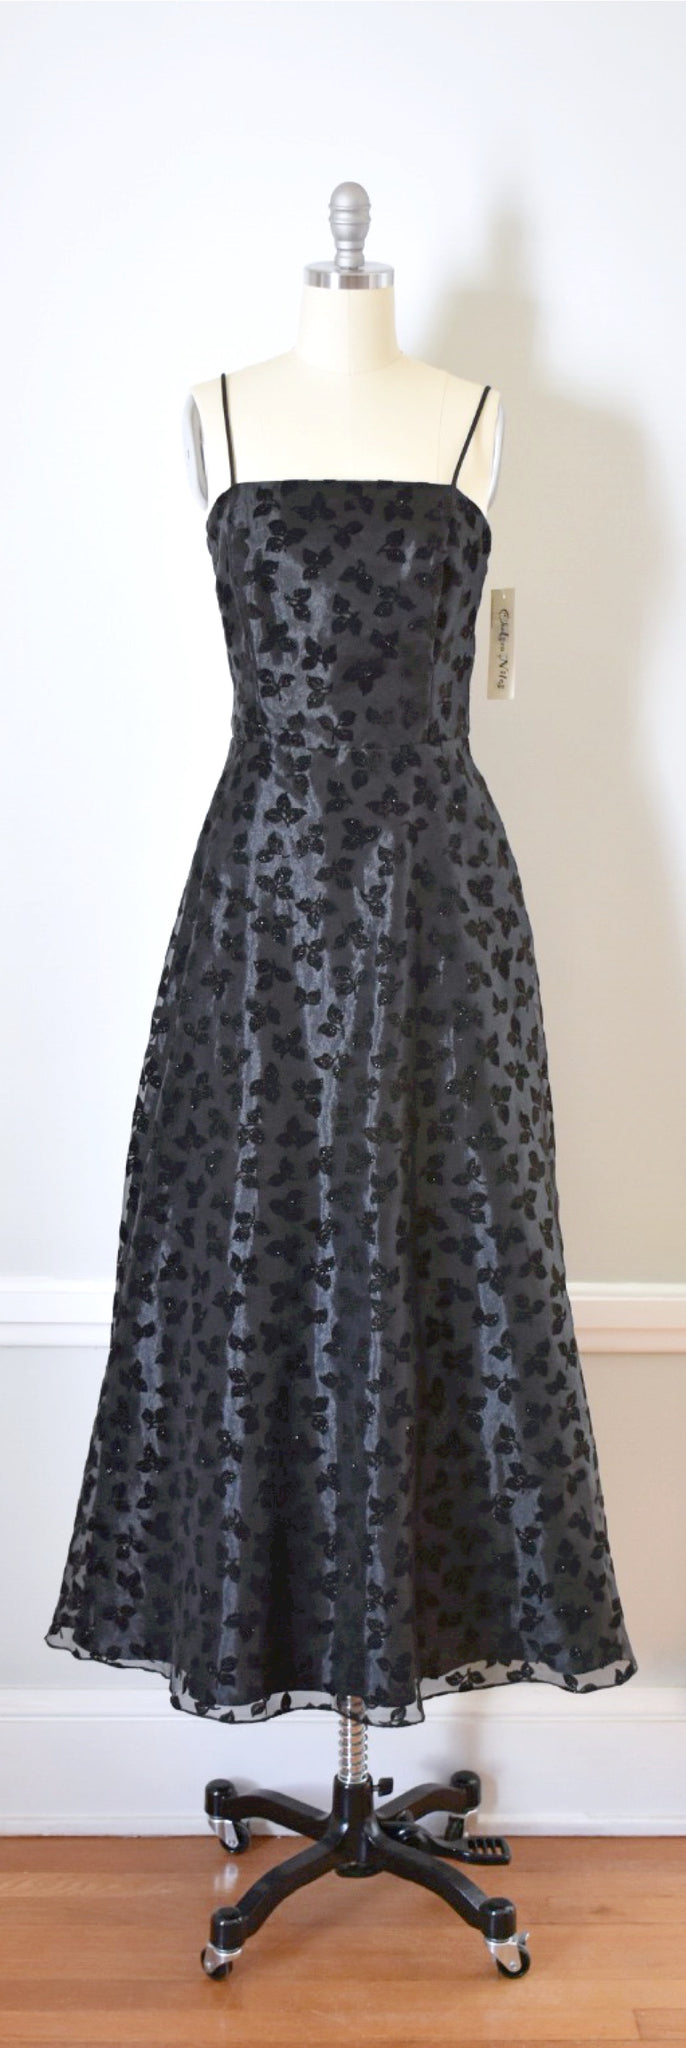 90s Vintage Fit And Flare Formal Dress